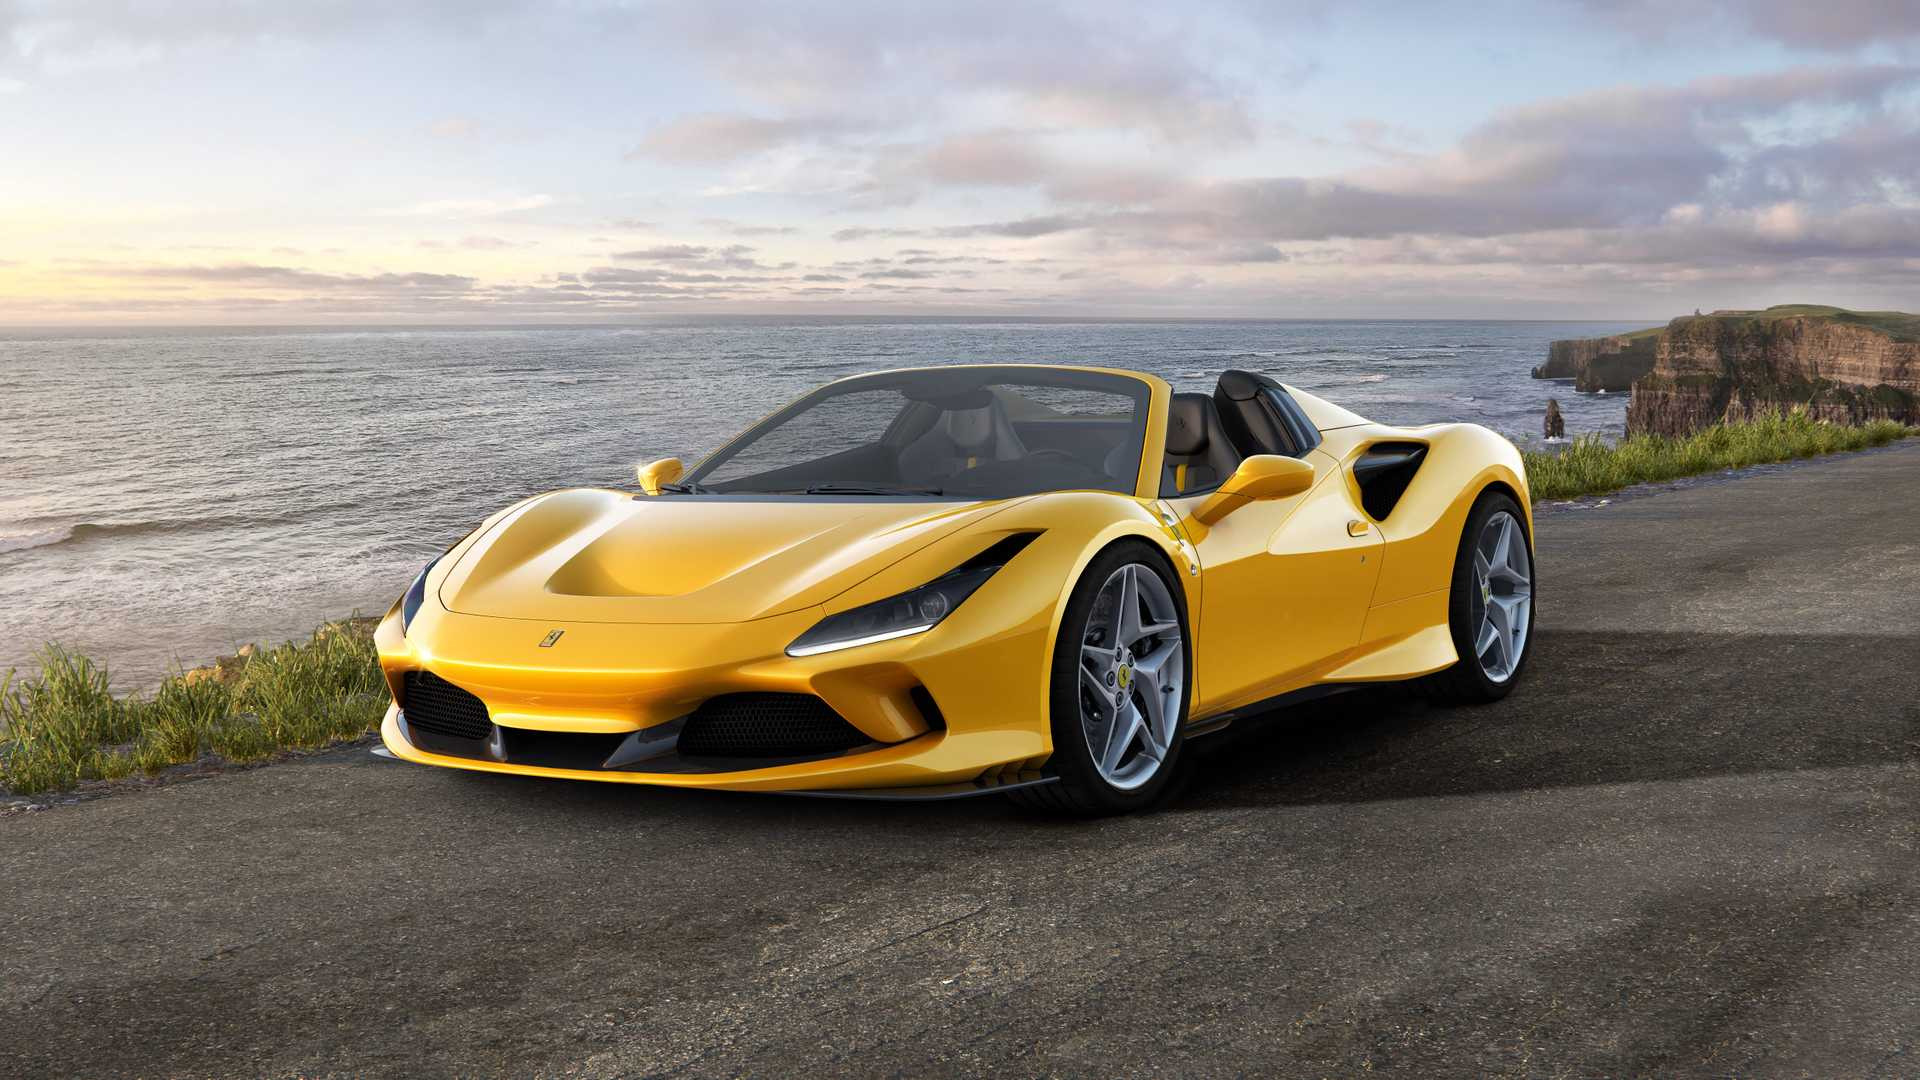 2020 Ferrari F8 Spider debuts with 710 horsepower and a 211mph top speed